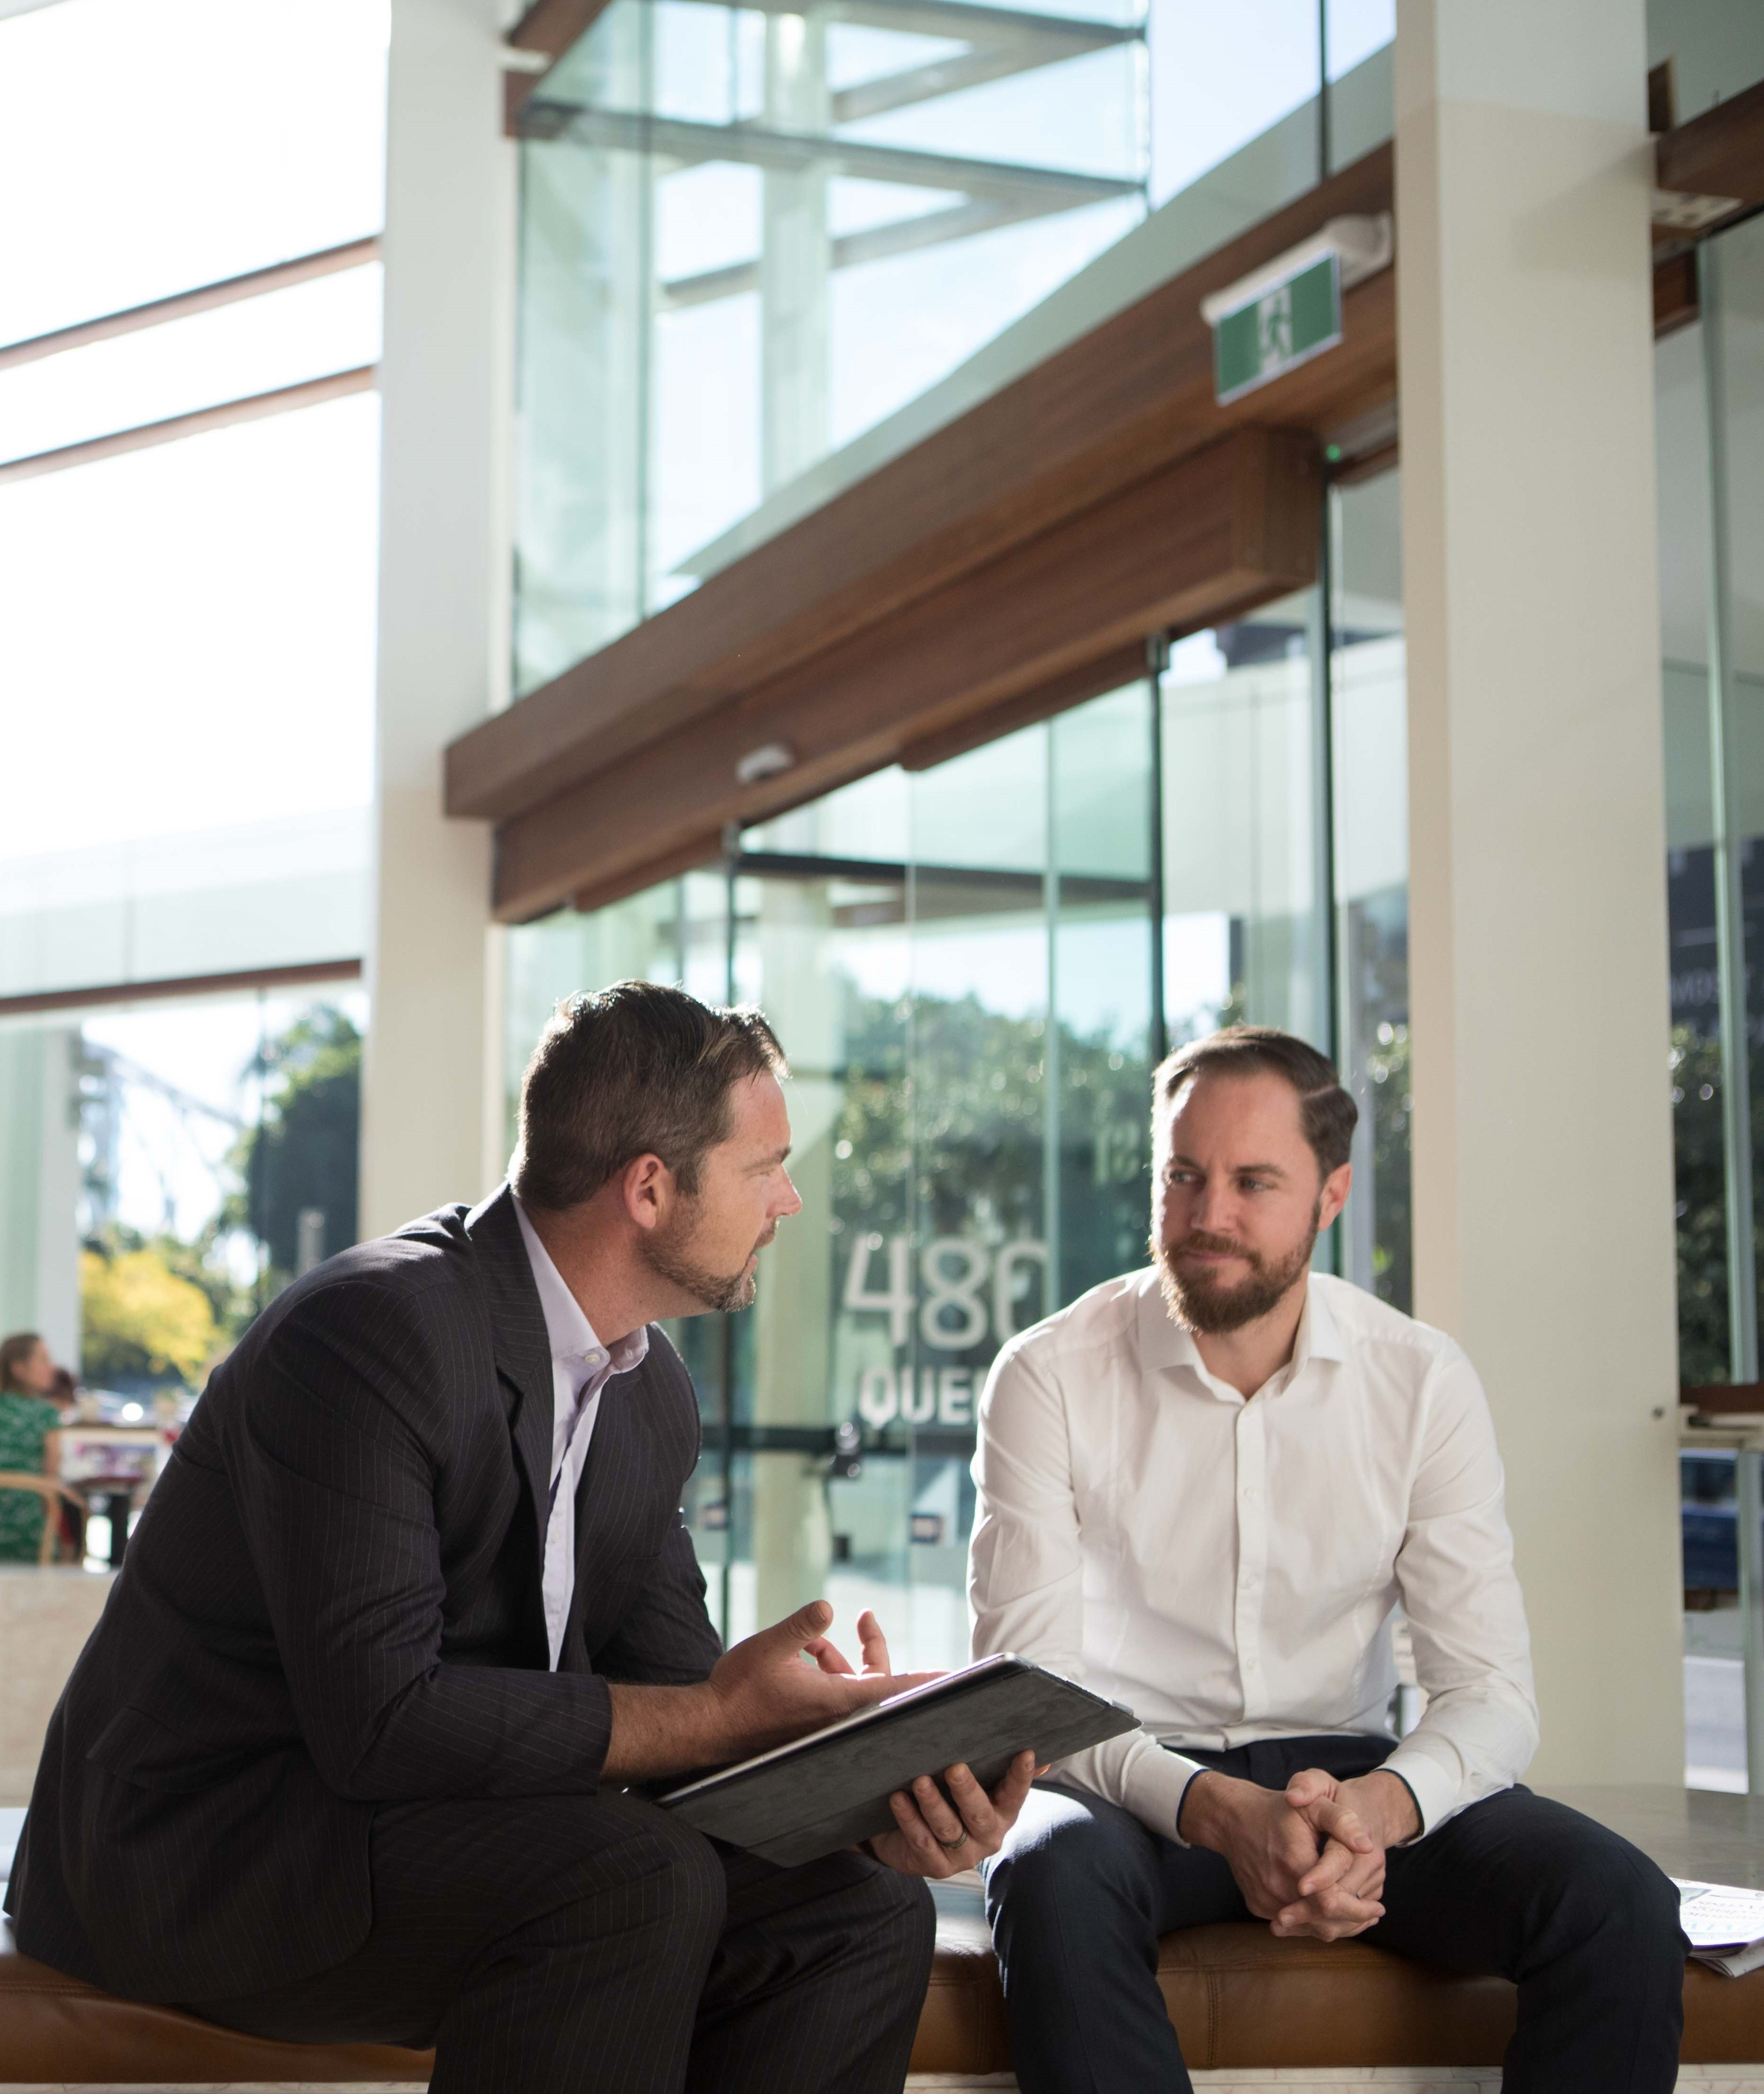 Two men discuss matters in a foyer